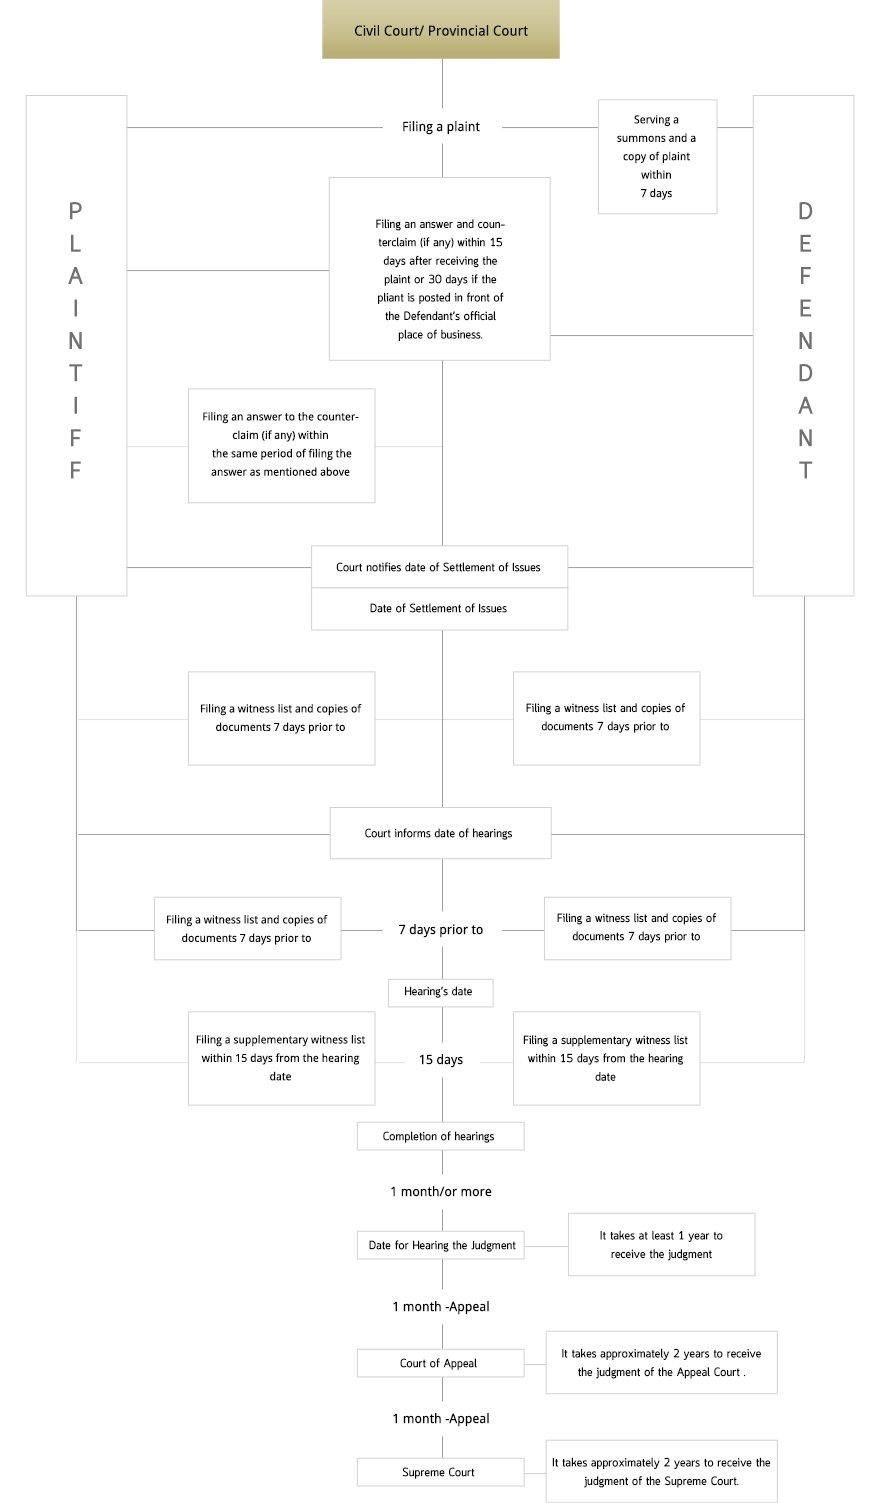 Civil Case Process Flowchart Dej Udom Associates R D Flow Chart Procedure 07